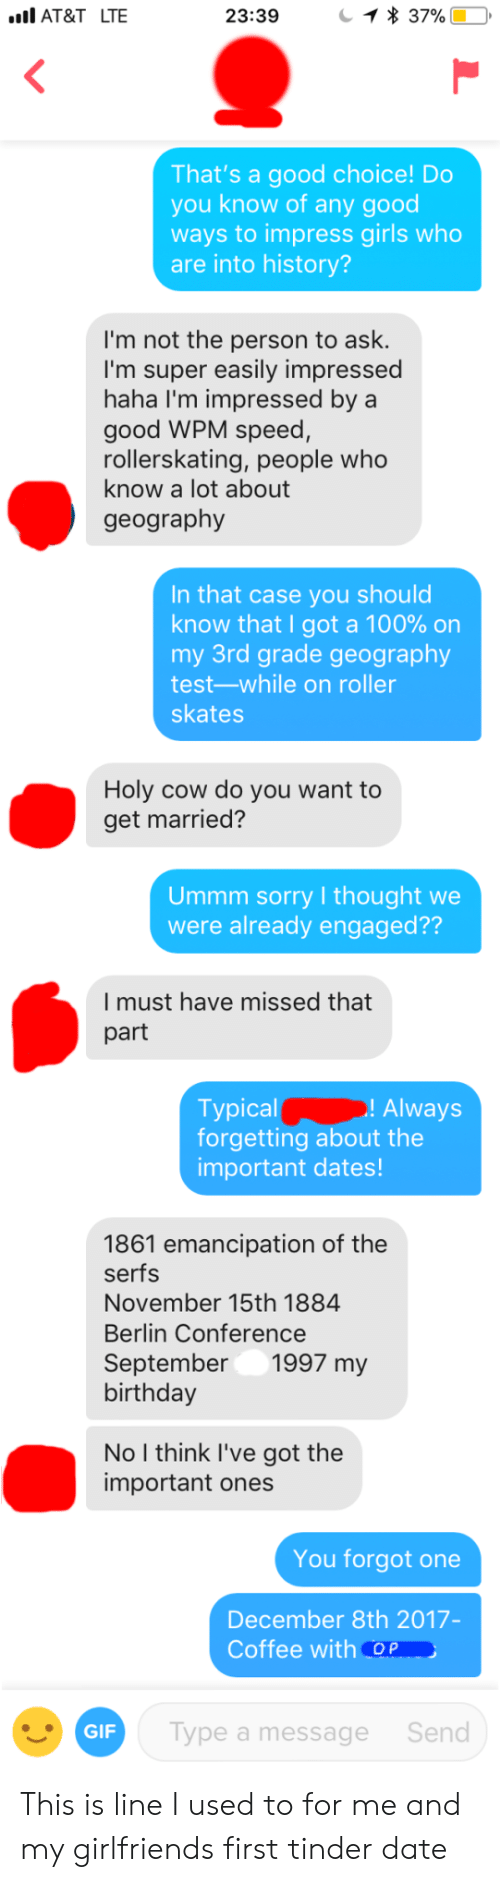 Skates: AT&T LTE  23:39  That's a good choice! Do  you know of any good  ways to impress girls who  are into history?  I'm not the person to ask.  I'm super easily impressed  haha I'm impressed bya  good WPM speed,  rollerskating, people who  know a lot about  geography  In that case you should  know that I got a 100% on  my 3rd grade geography  test-while on roller  skates  Holy cow do you want to  get married?  Ummm sorry I thought we  were already engaged??  I must have missed that  part  ! Always  Typical  forgetting about the  important dates!  1861 emancipation of the  serfs  November 15th 1884  Berlin Conference  September1997 my  birthday  No I think I've got the  important ones  You forgot one  December 8th 2017-  Coffee with Op  GIF  Type a message  Send This is line I used to for me and my girlfriends first tinder date